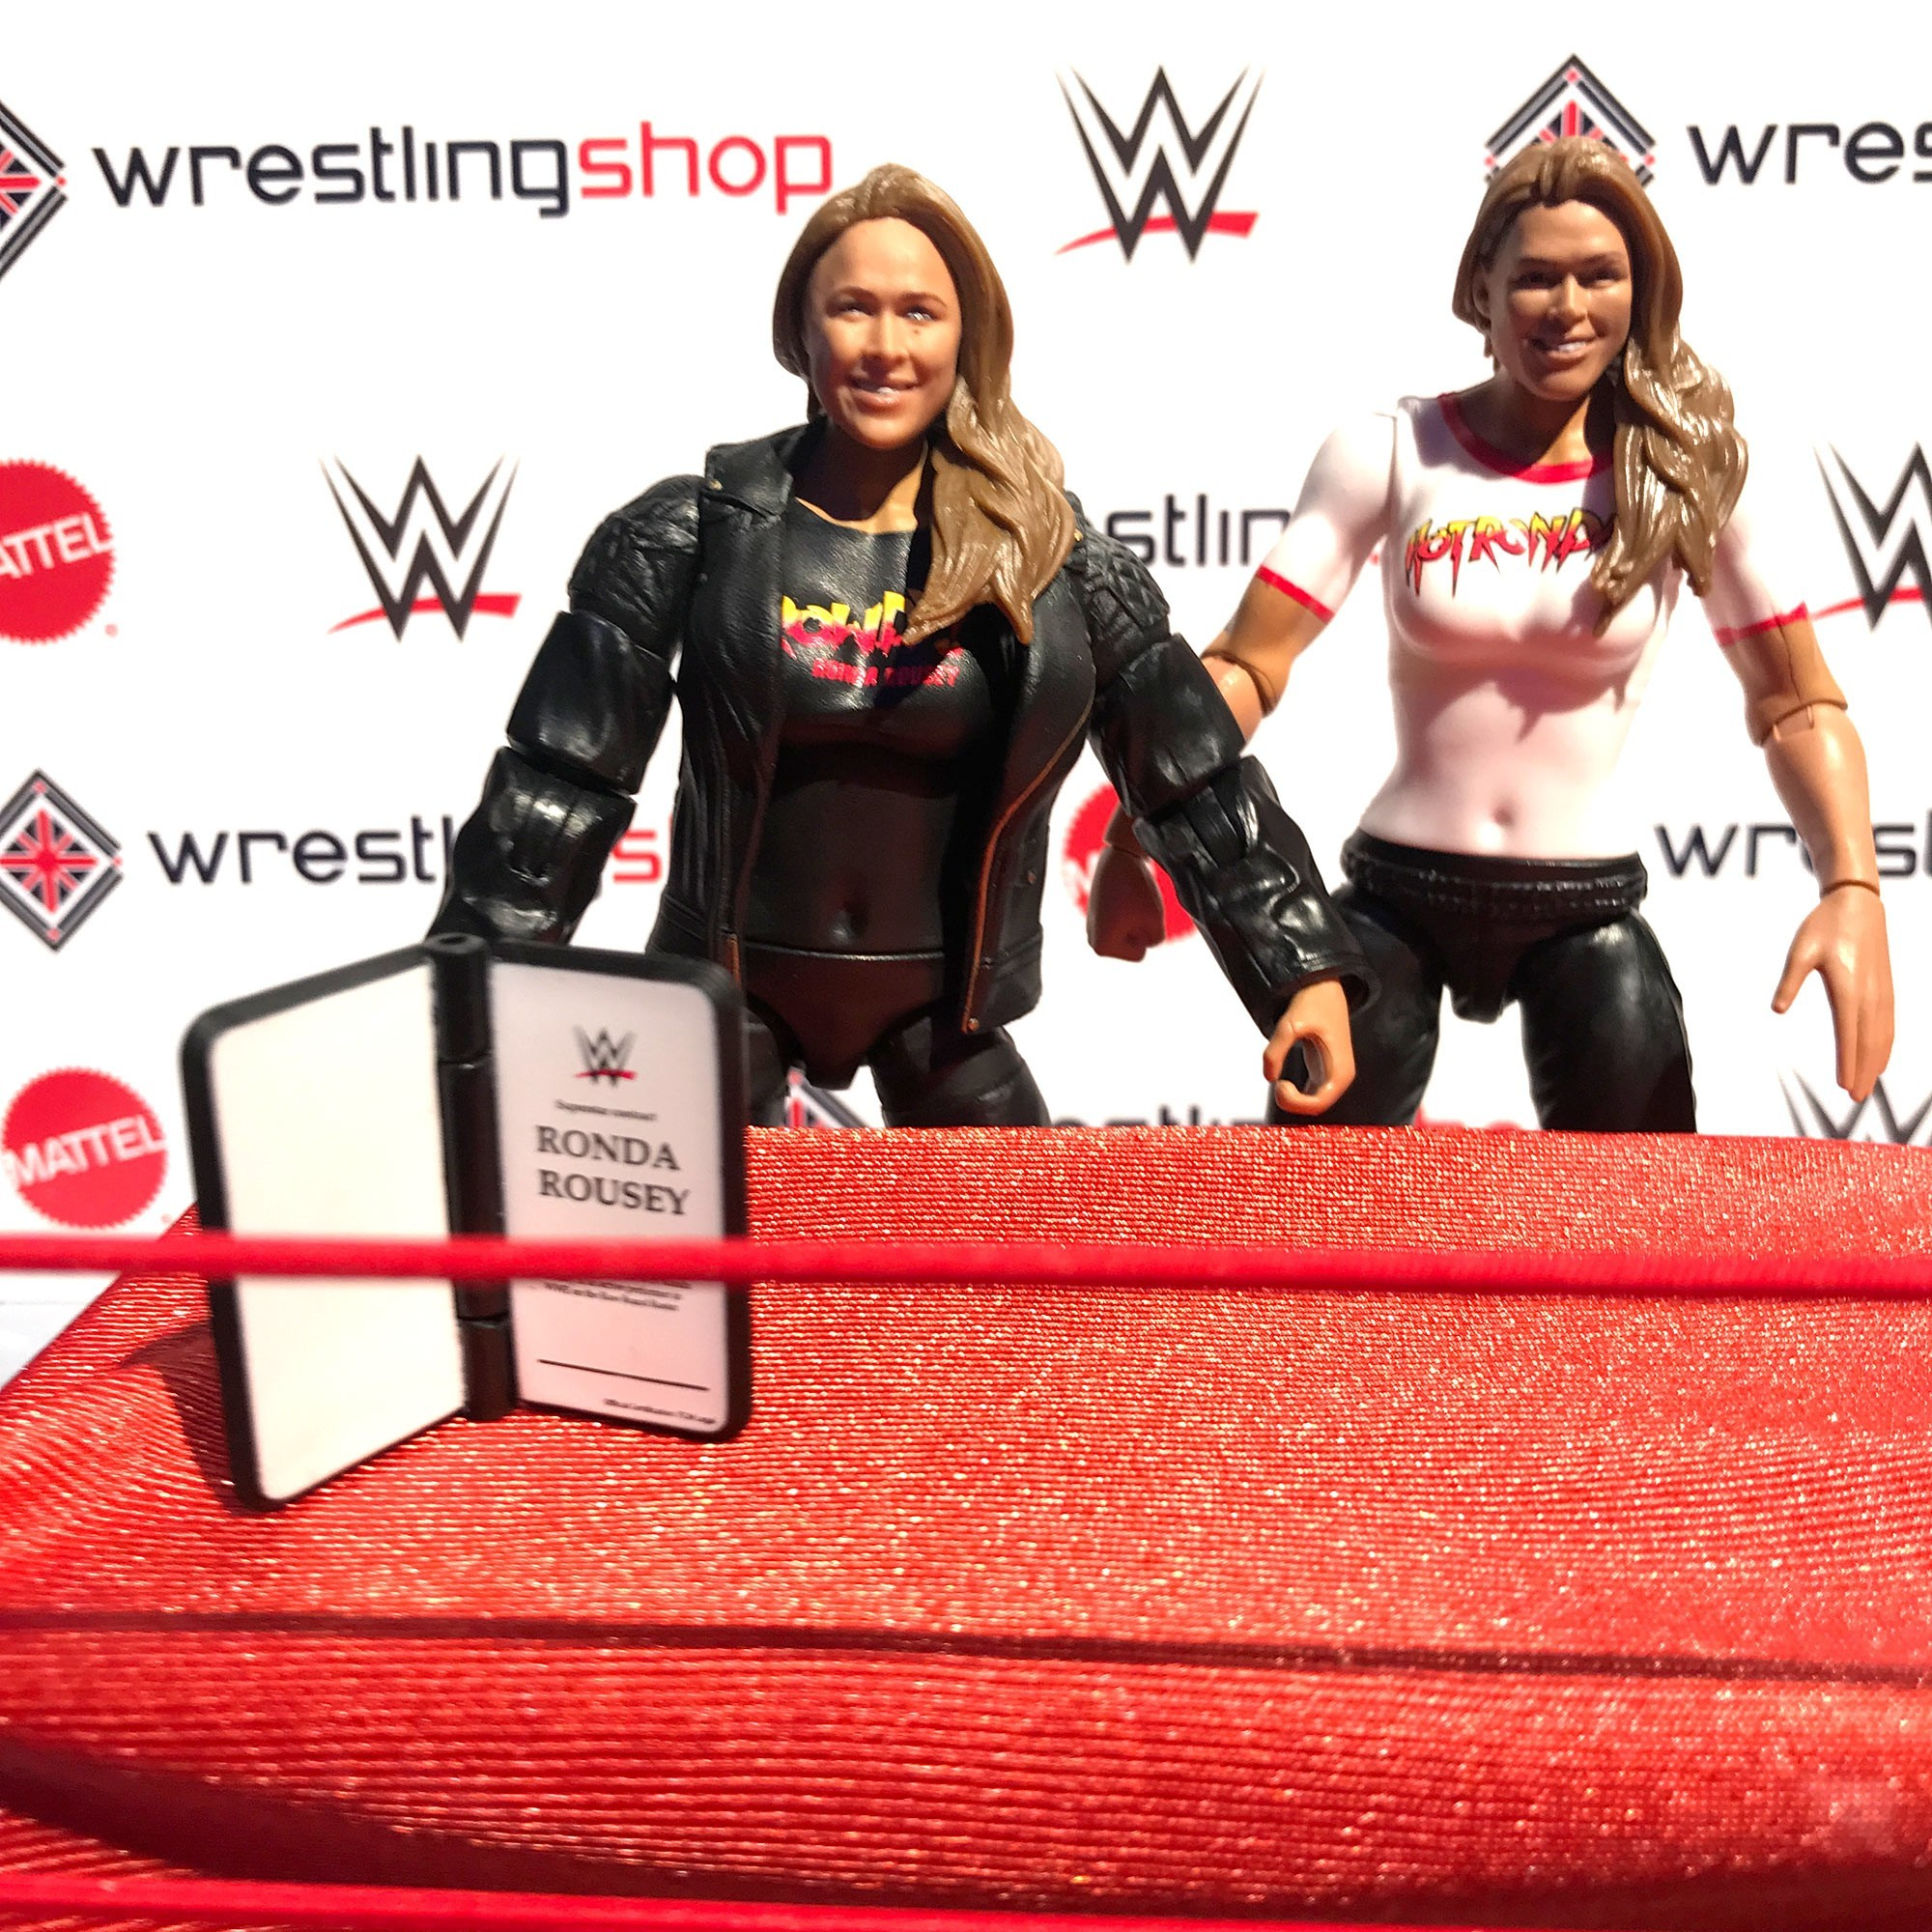 Ronda Rousey WWE Figure - Wrestling Shop